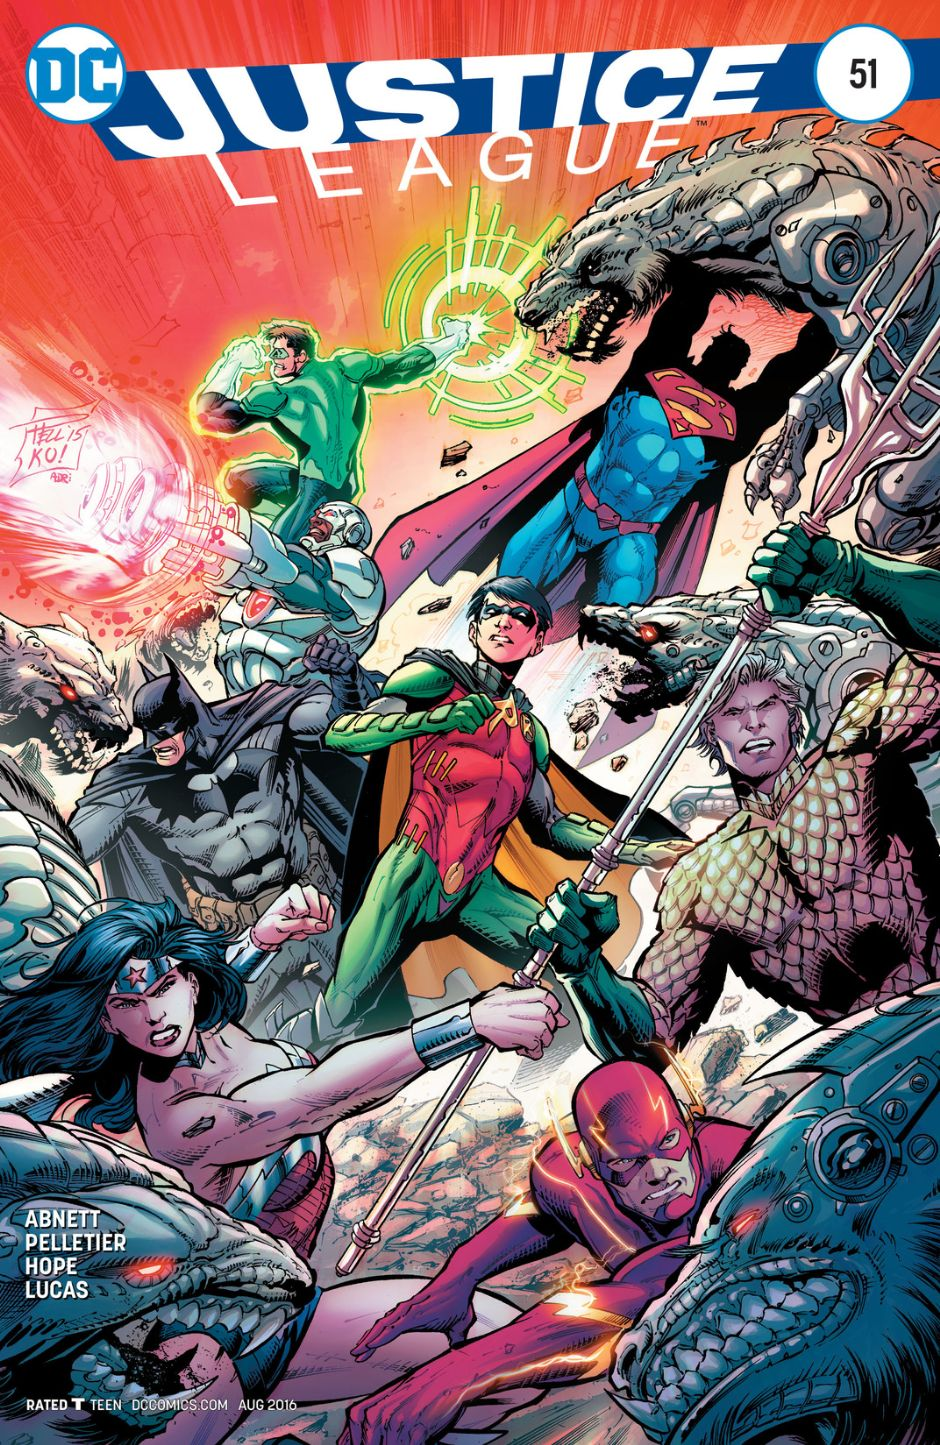 Justice League Vol 2 51   DC Database   FANDOM powered by ...